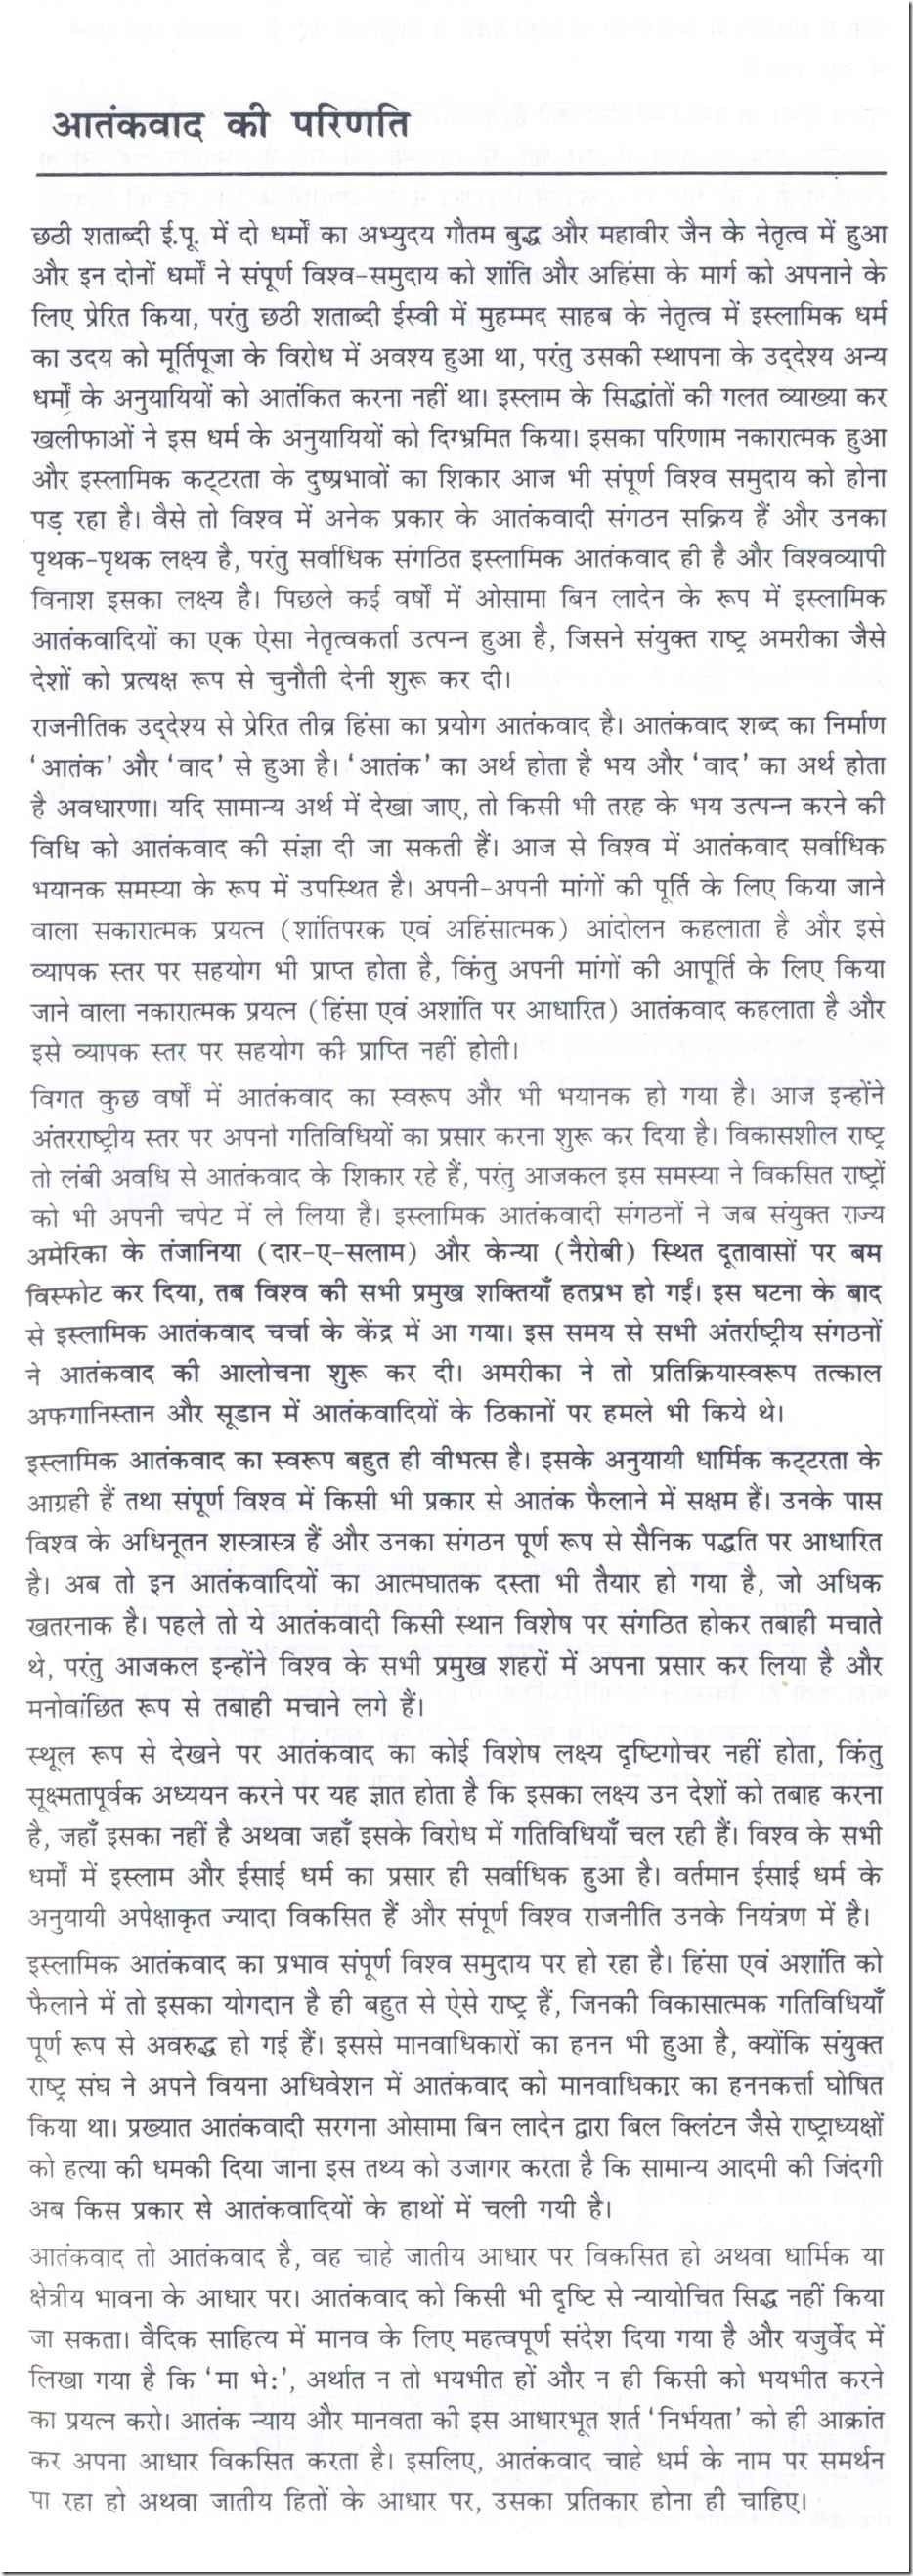 006 Essay Example 10010 Thumb Global Terrorism In Outstanding Hindi Full